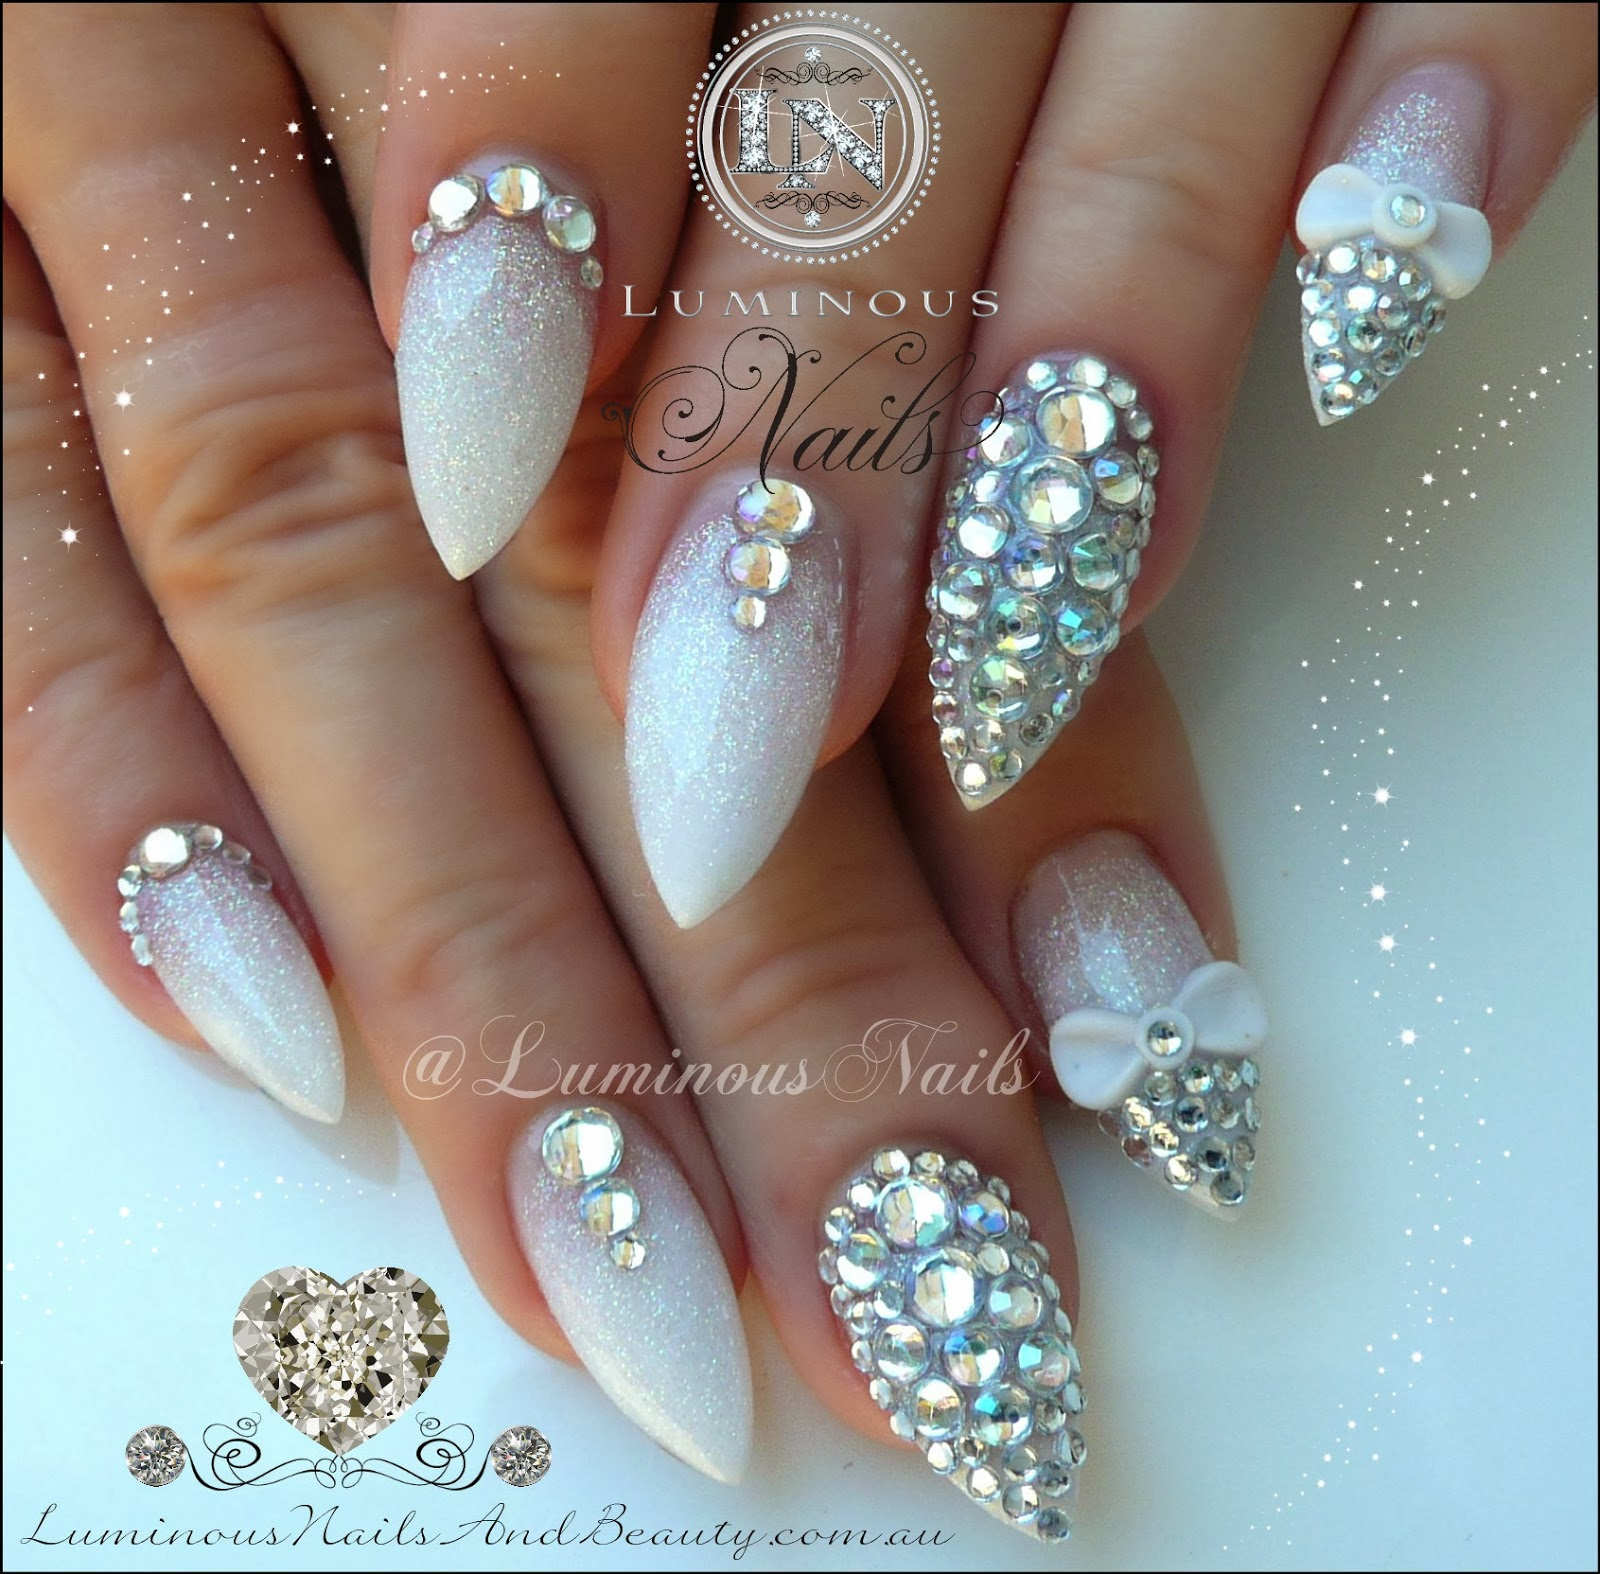 Nails Pearl Rhinestones For Nail Art Can Be Purchased Here For Very